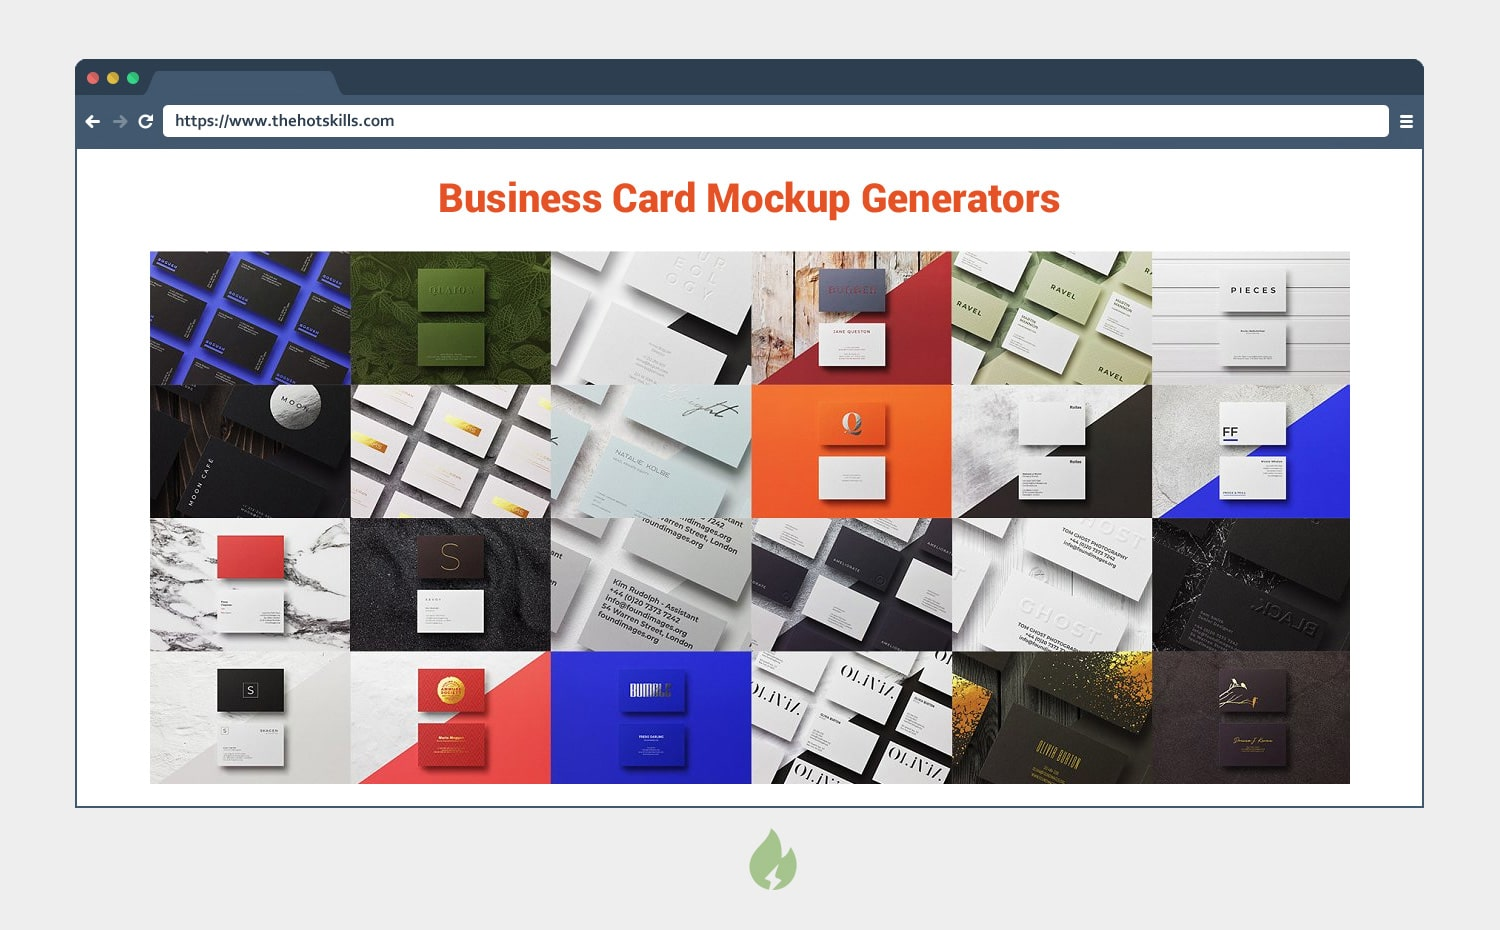 Business Card Mockup Generator